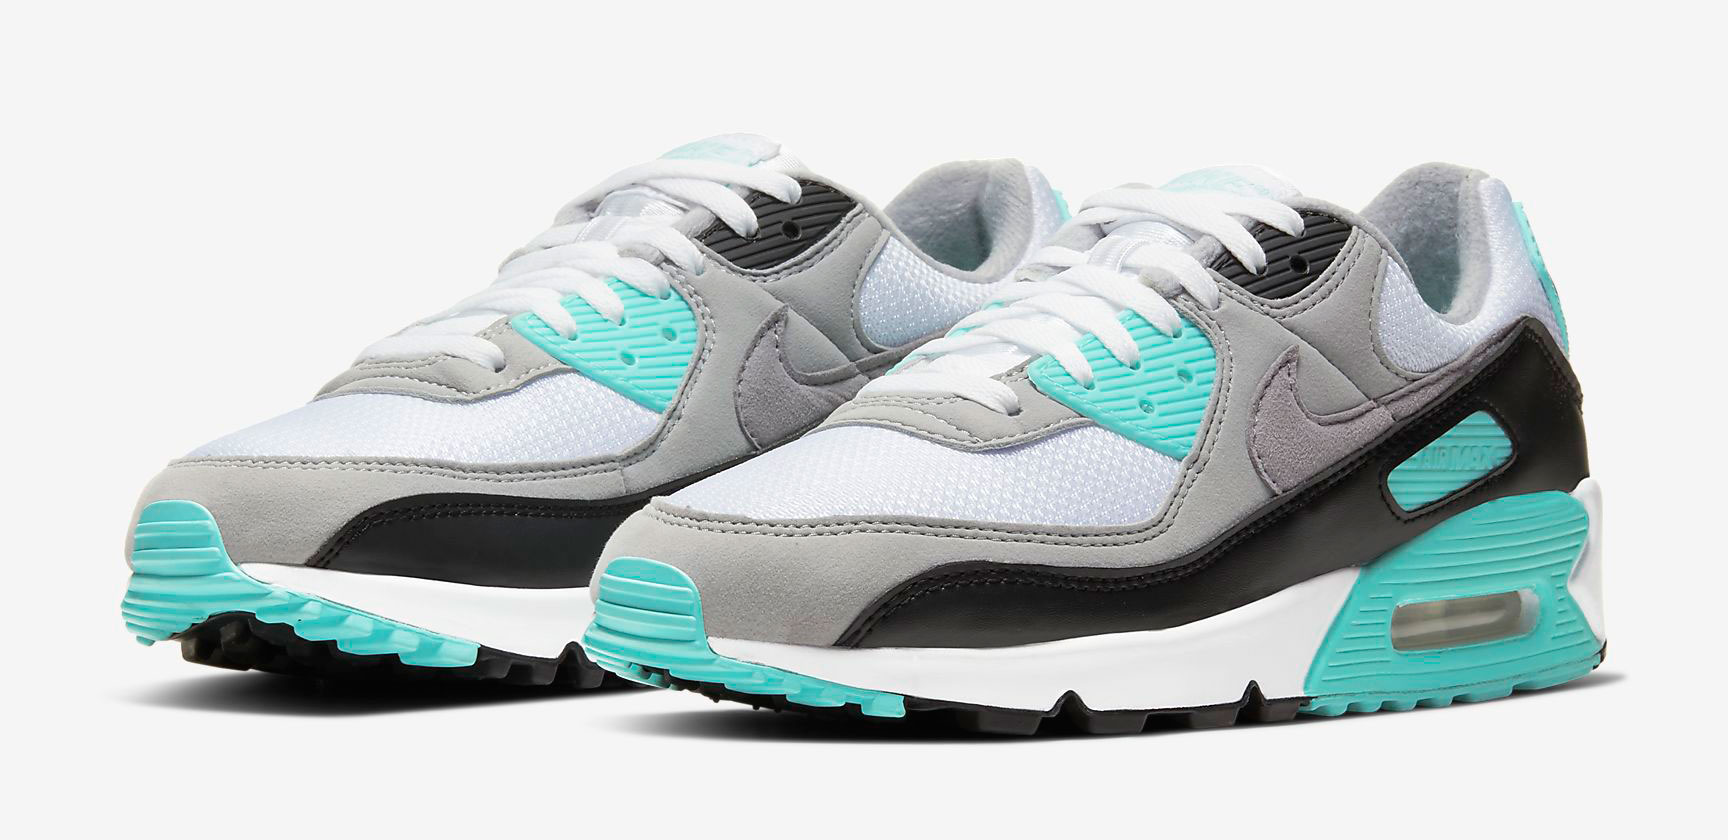 nike-air-max-90-hyper-turquoise-release-date-price-1